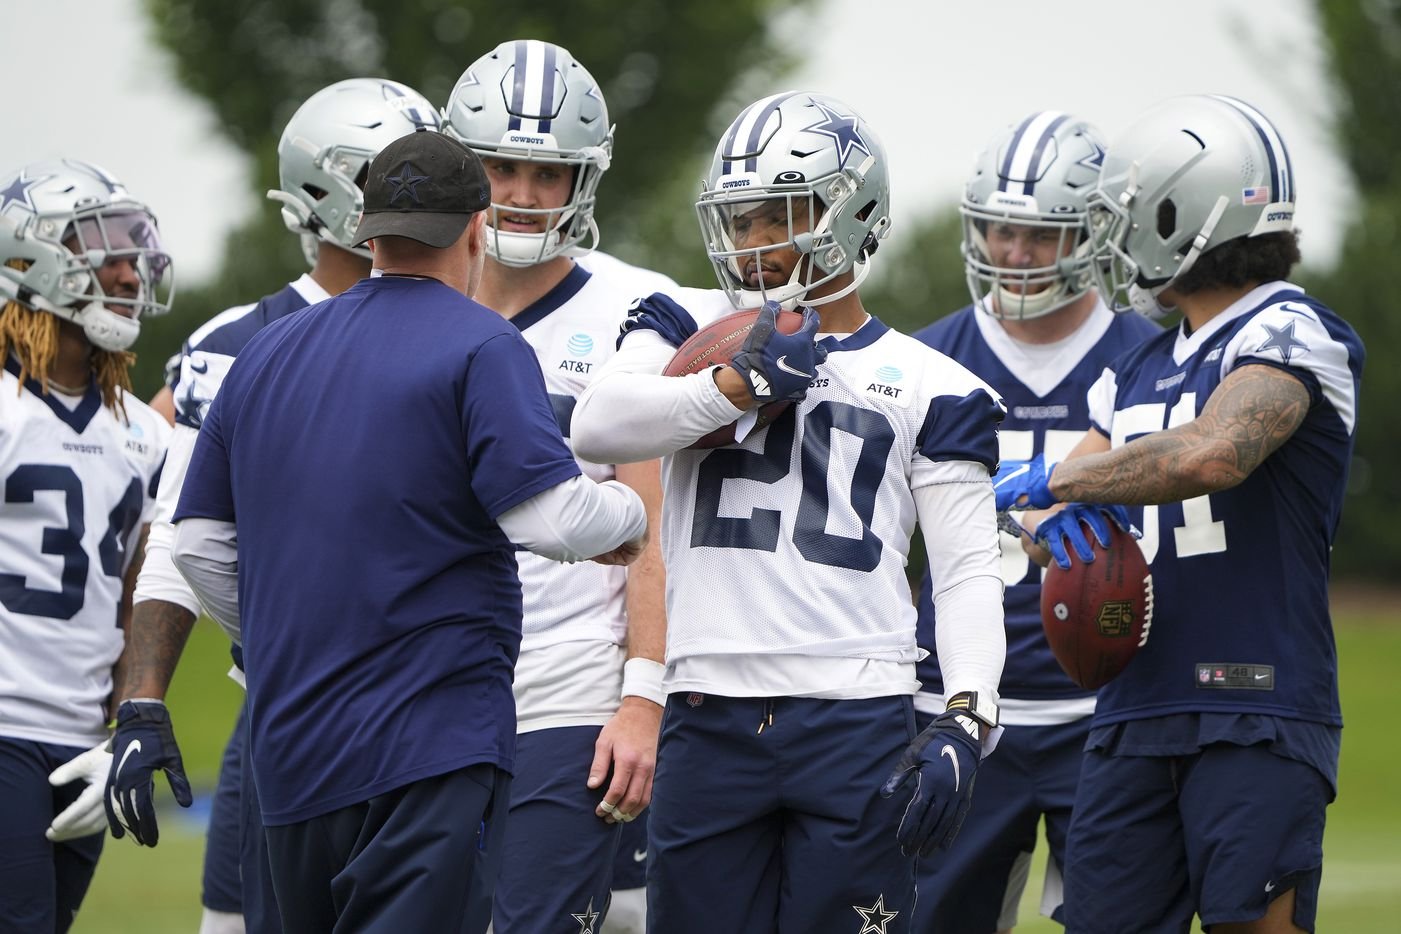 Dallas Cowboys running back Tony Pollard (20) clutches the ball while participating in a fumble drill during a minicamp practice at The Star on Wednesday, June 9, 2021, in Frisco. (Smiley N. Pool/The Dallas Morning News)